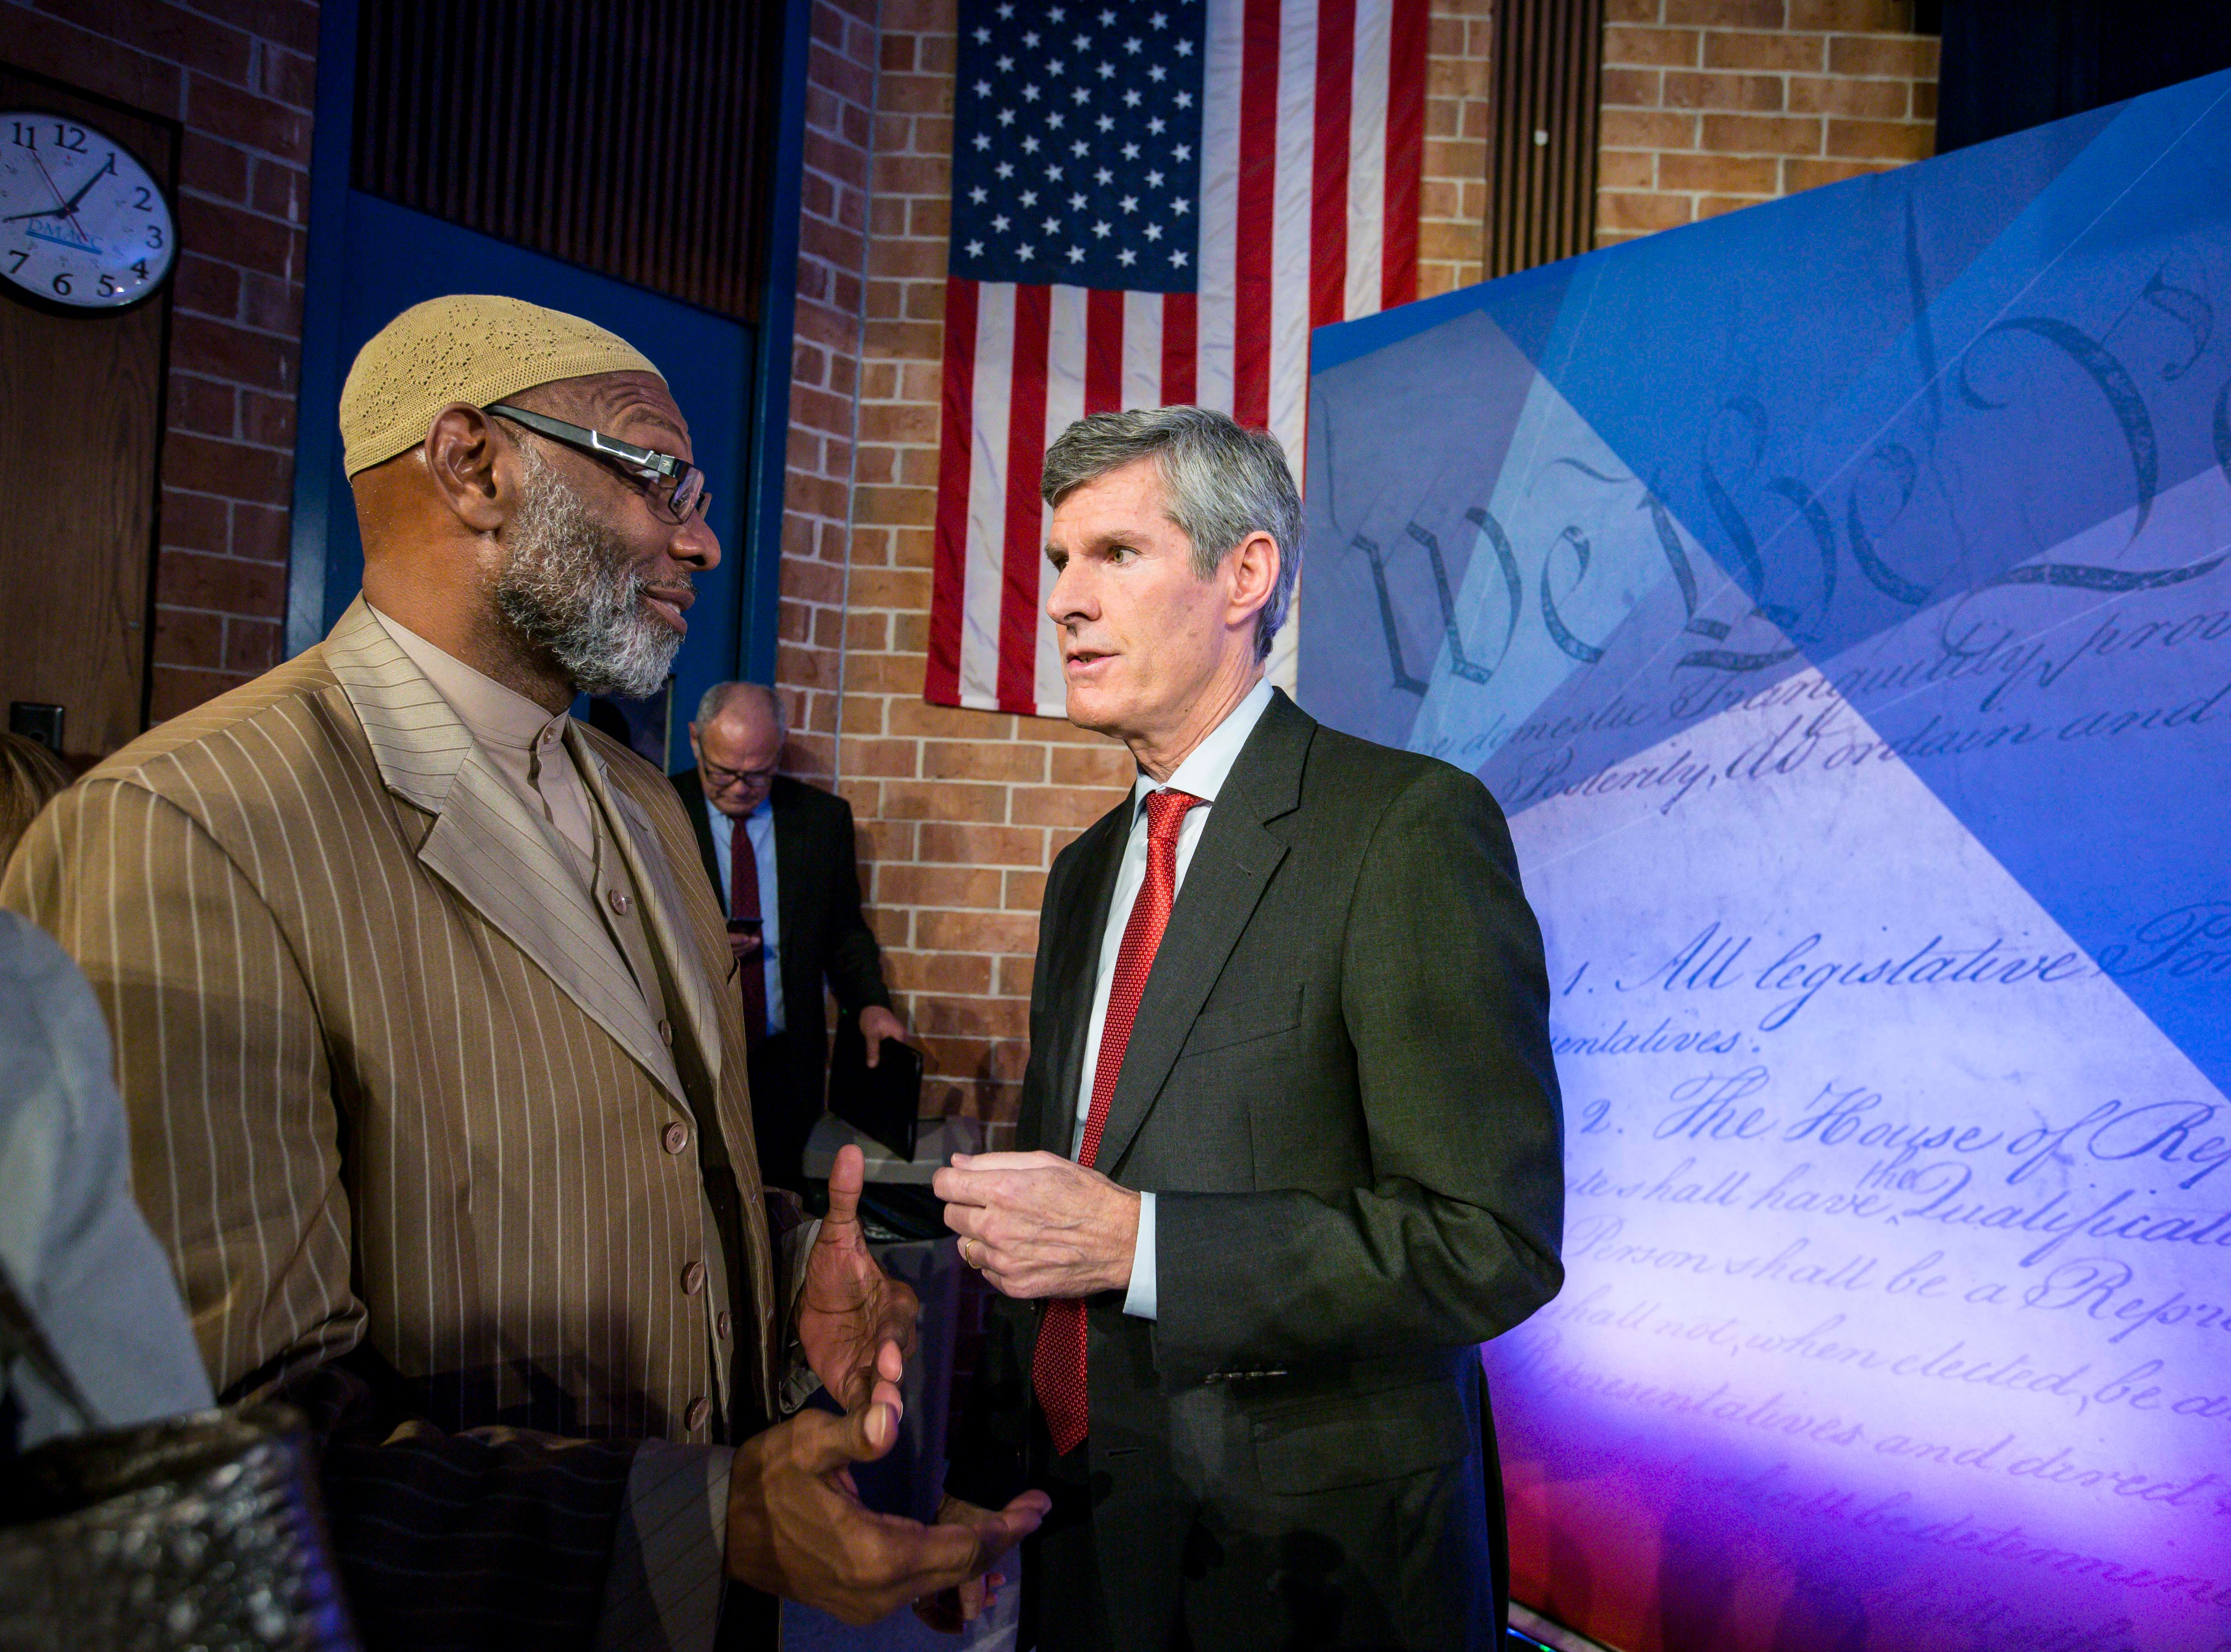 Democratic challenger Fred Hubbell talks with Ako Abdul-Samad after the debate Wednesday, Oct. 10, 2018, at Des Moines Area Community College in Ankeny, Iowa.